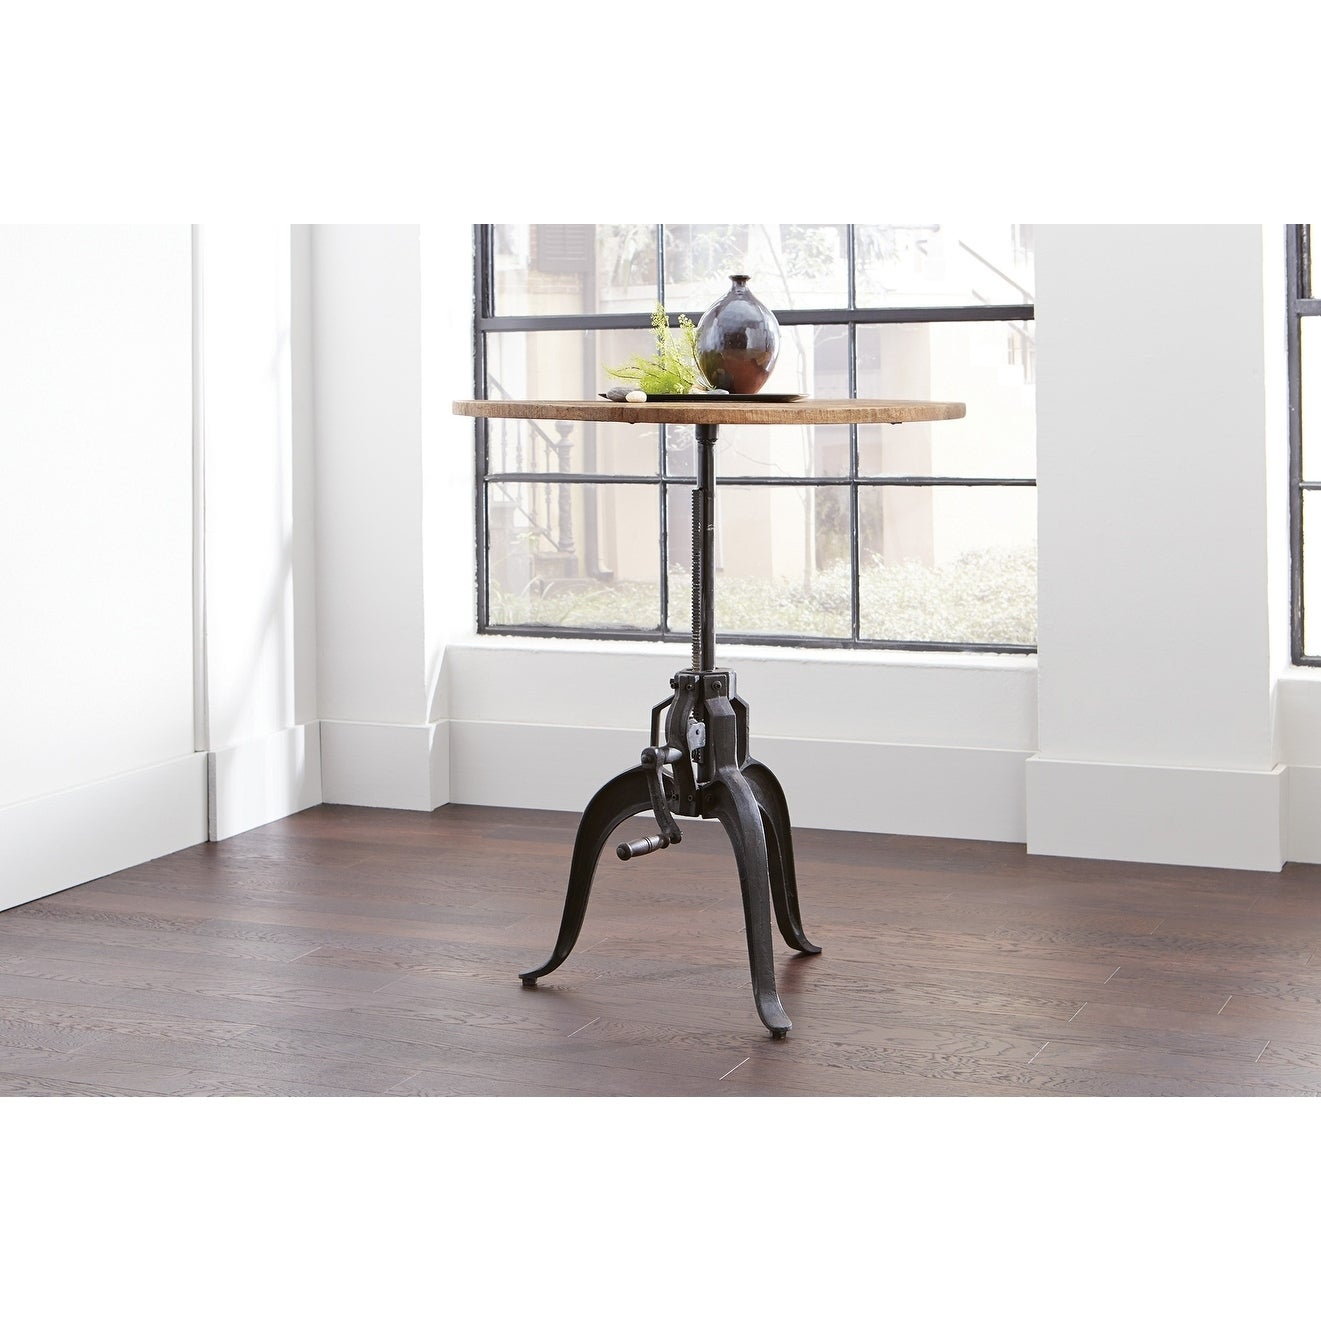 Adjustable Height Round Table.Garrett Round Industrial Adjustable Height Dining Table Black Natural